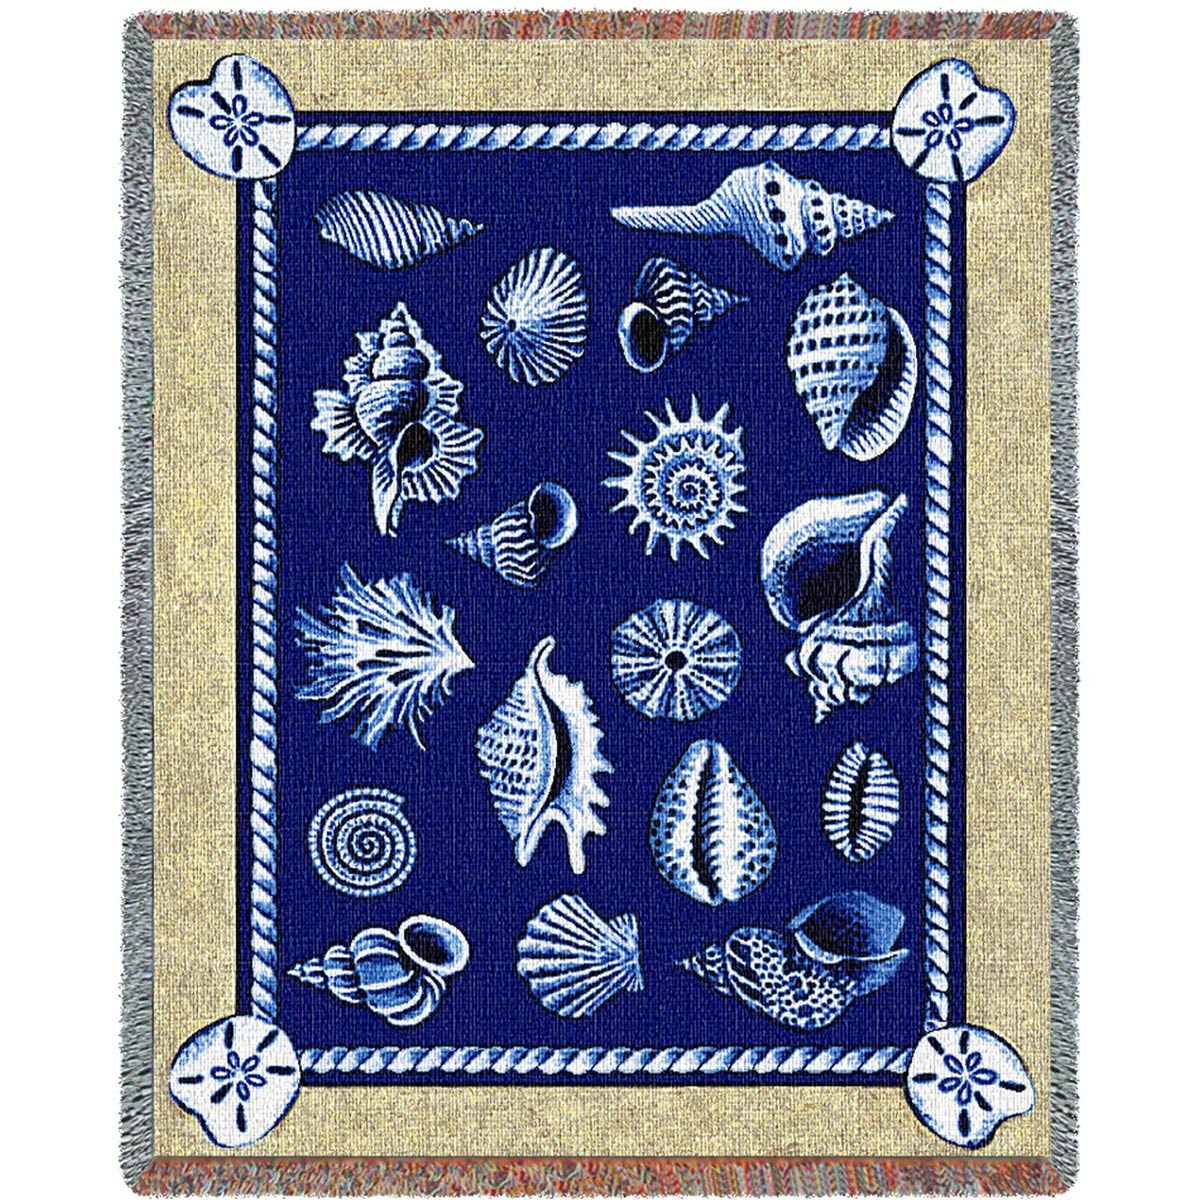 Shell Collection Blanket